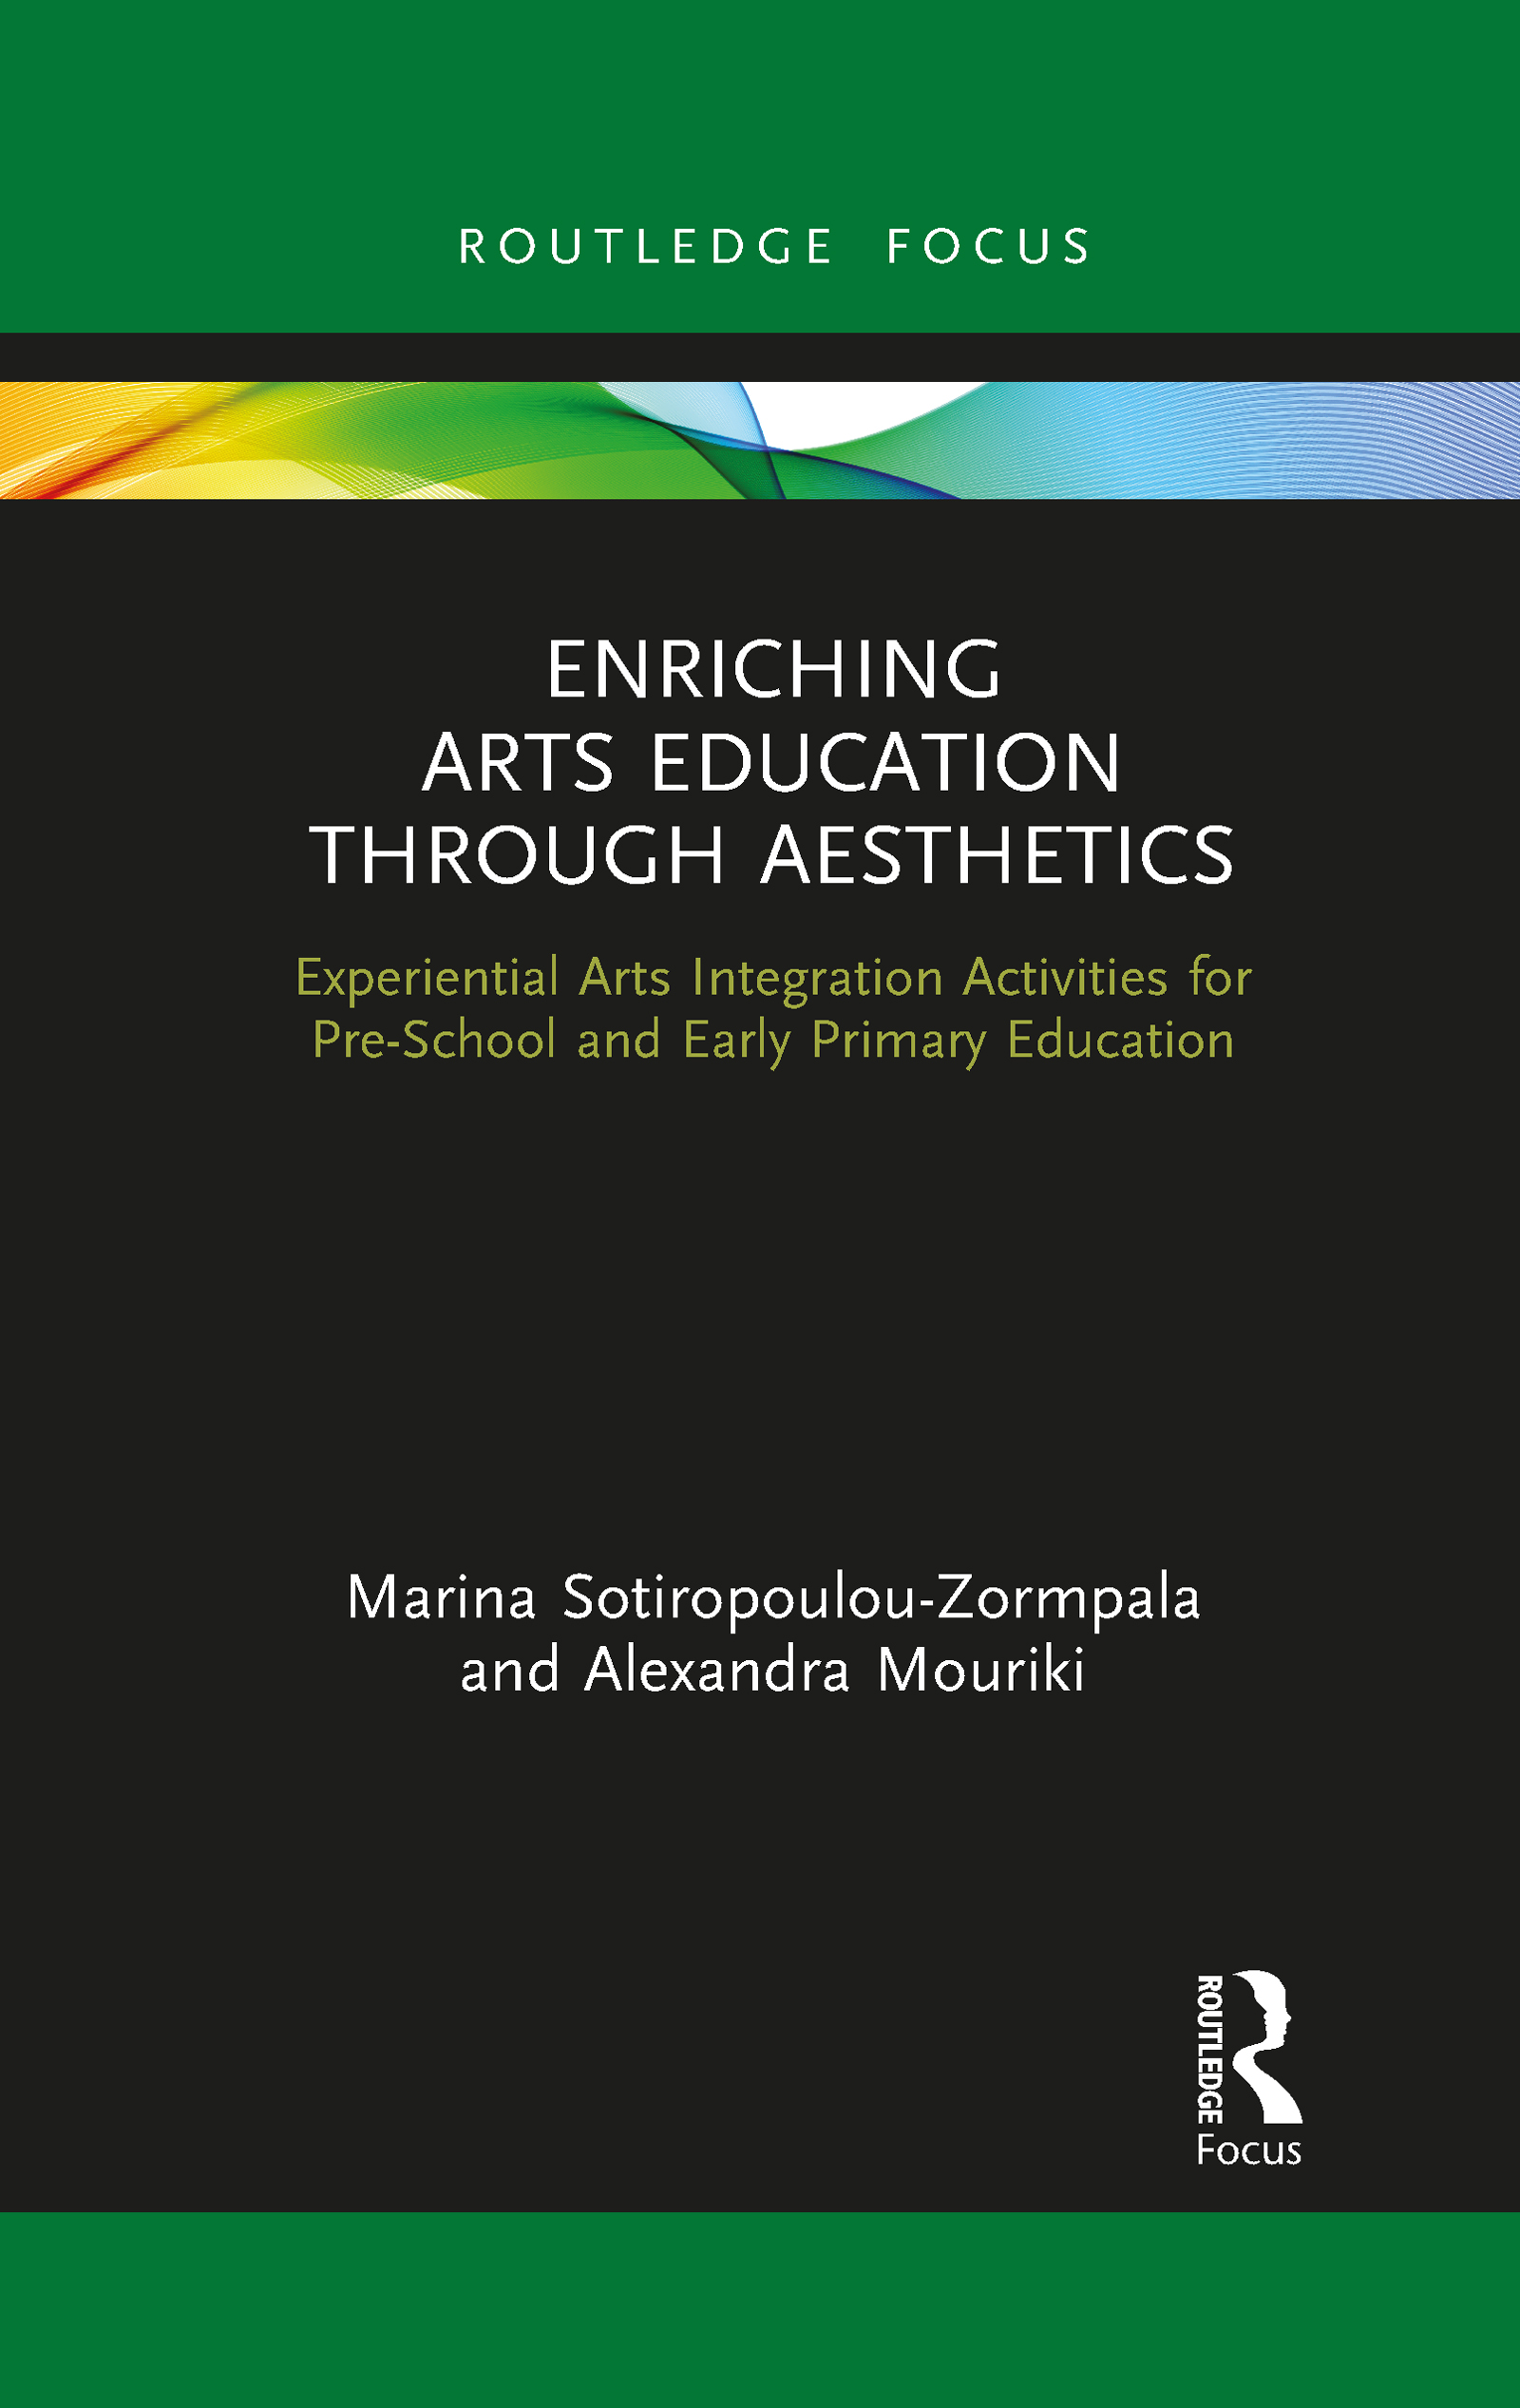 Enriching Arts Education through Aesthetics